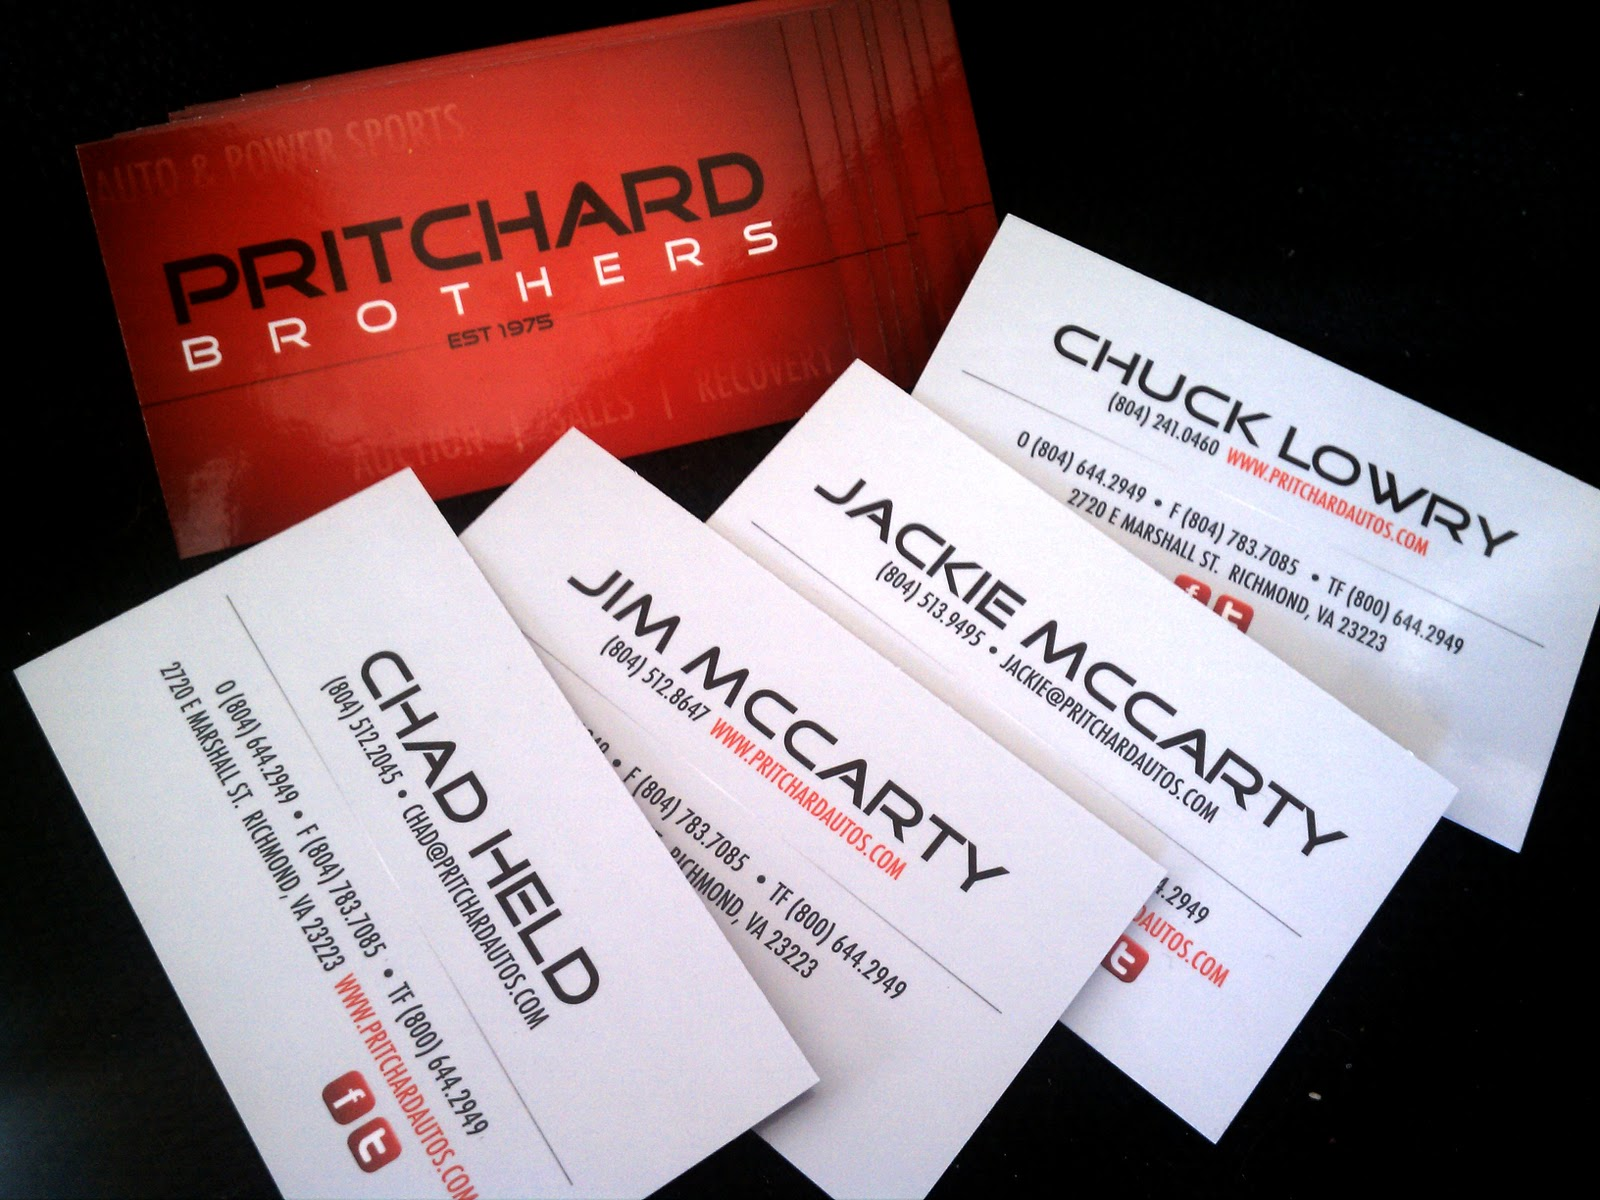 Beauticontrol Images For Business Cards